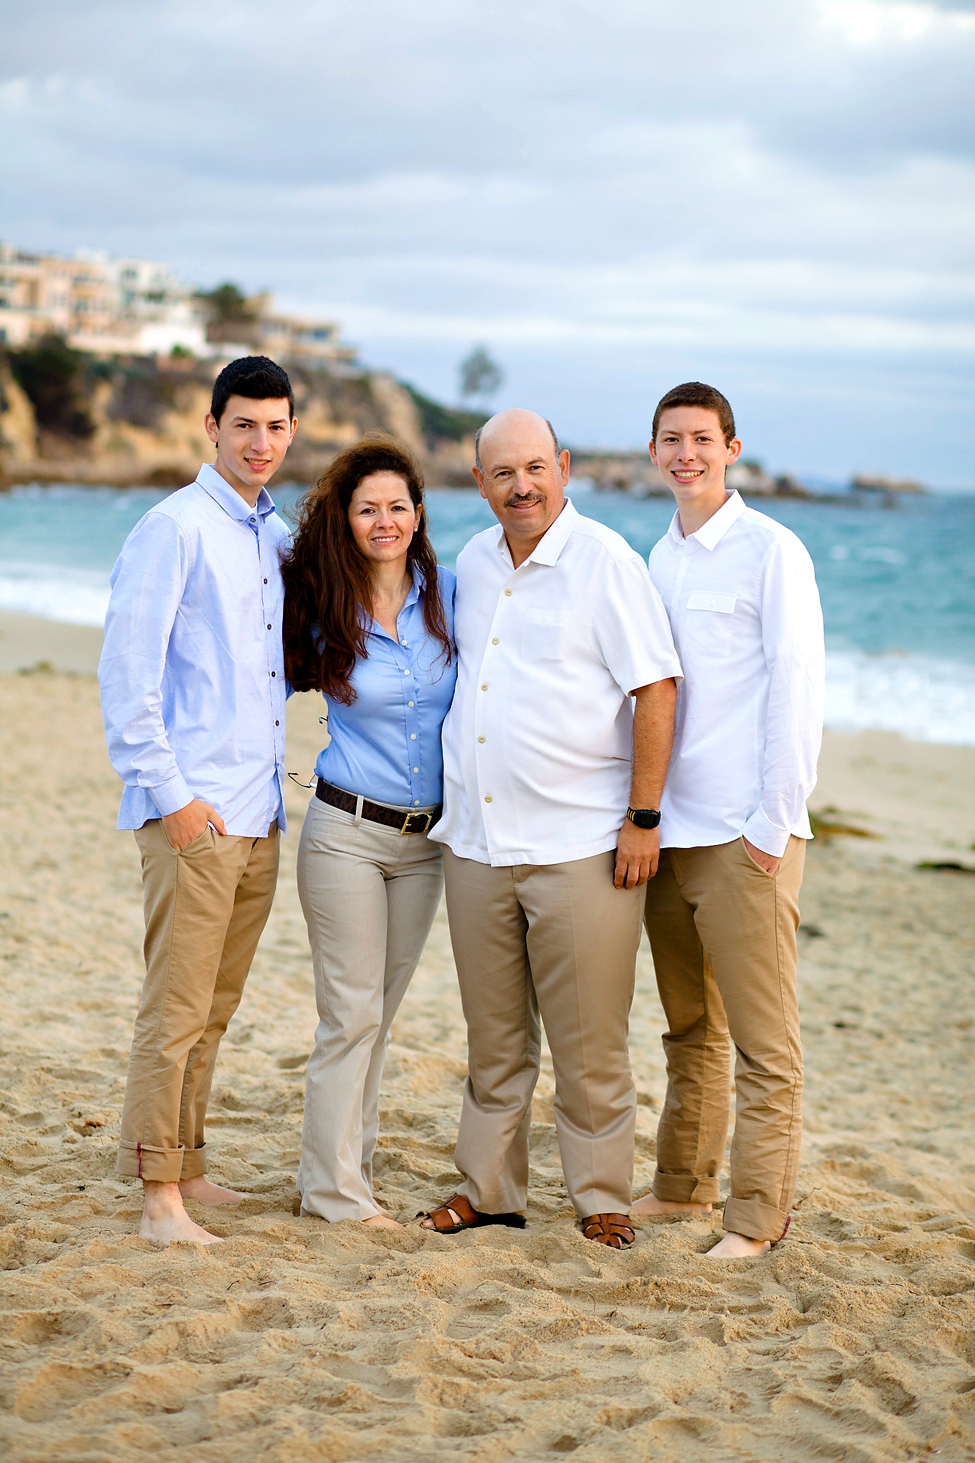 family holiday portraits at the beach